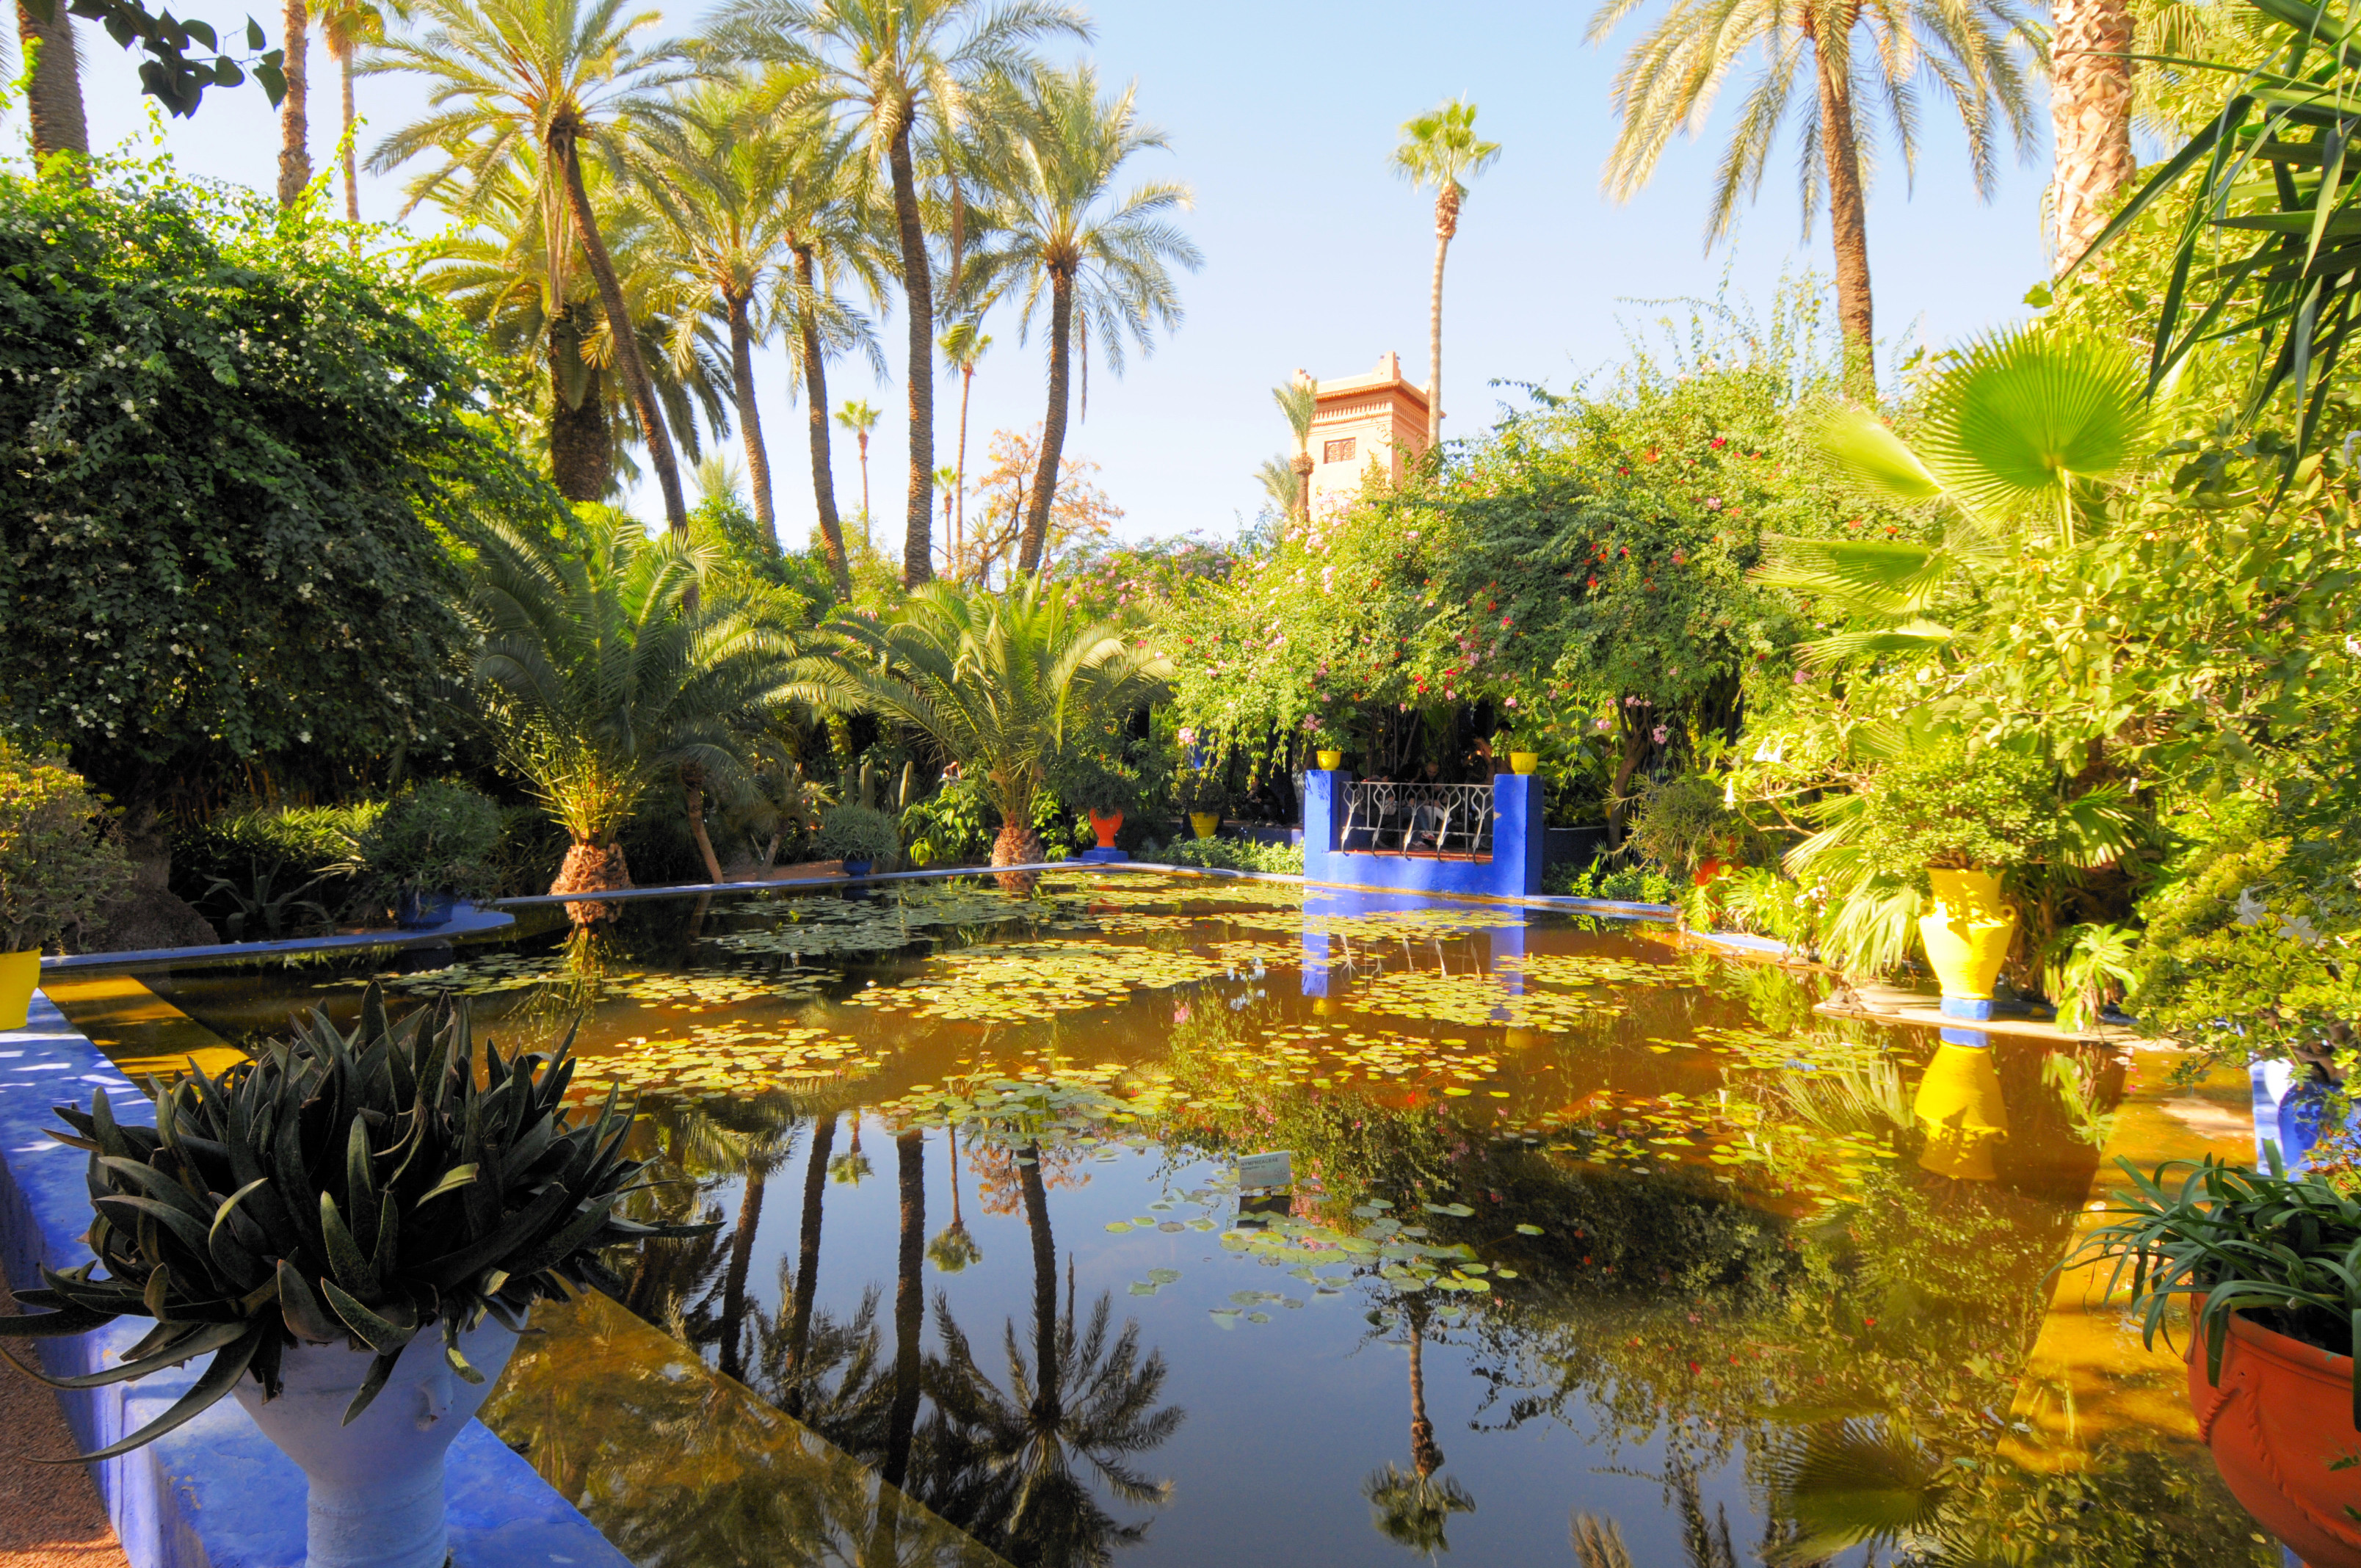 Majorelle marrakech check out majorelle marrakech cntravel for Le jardin de lea